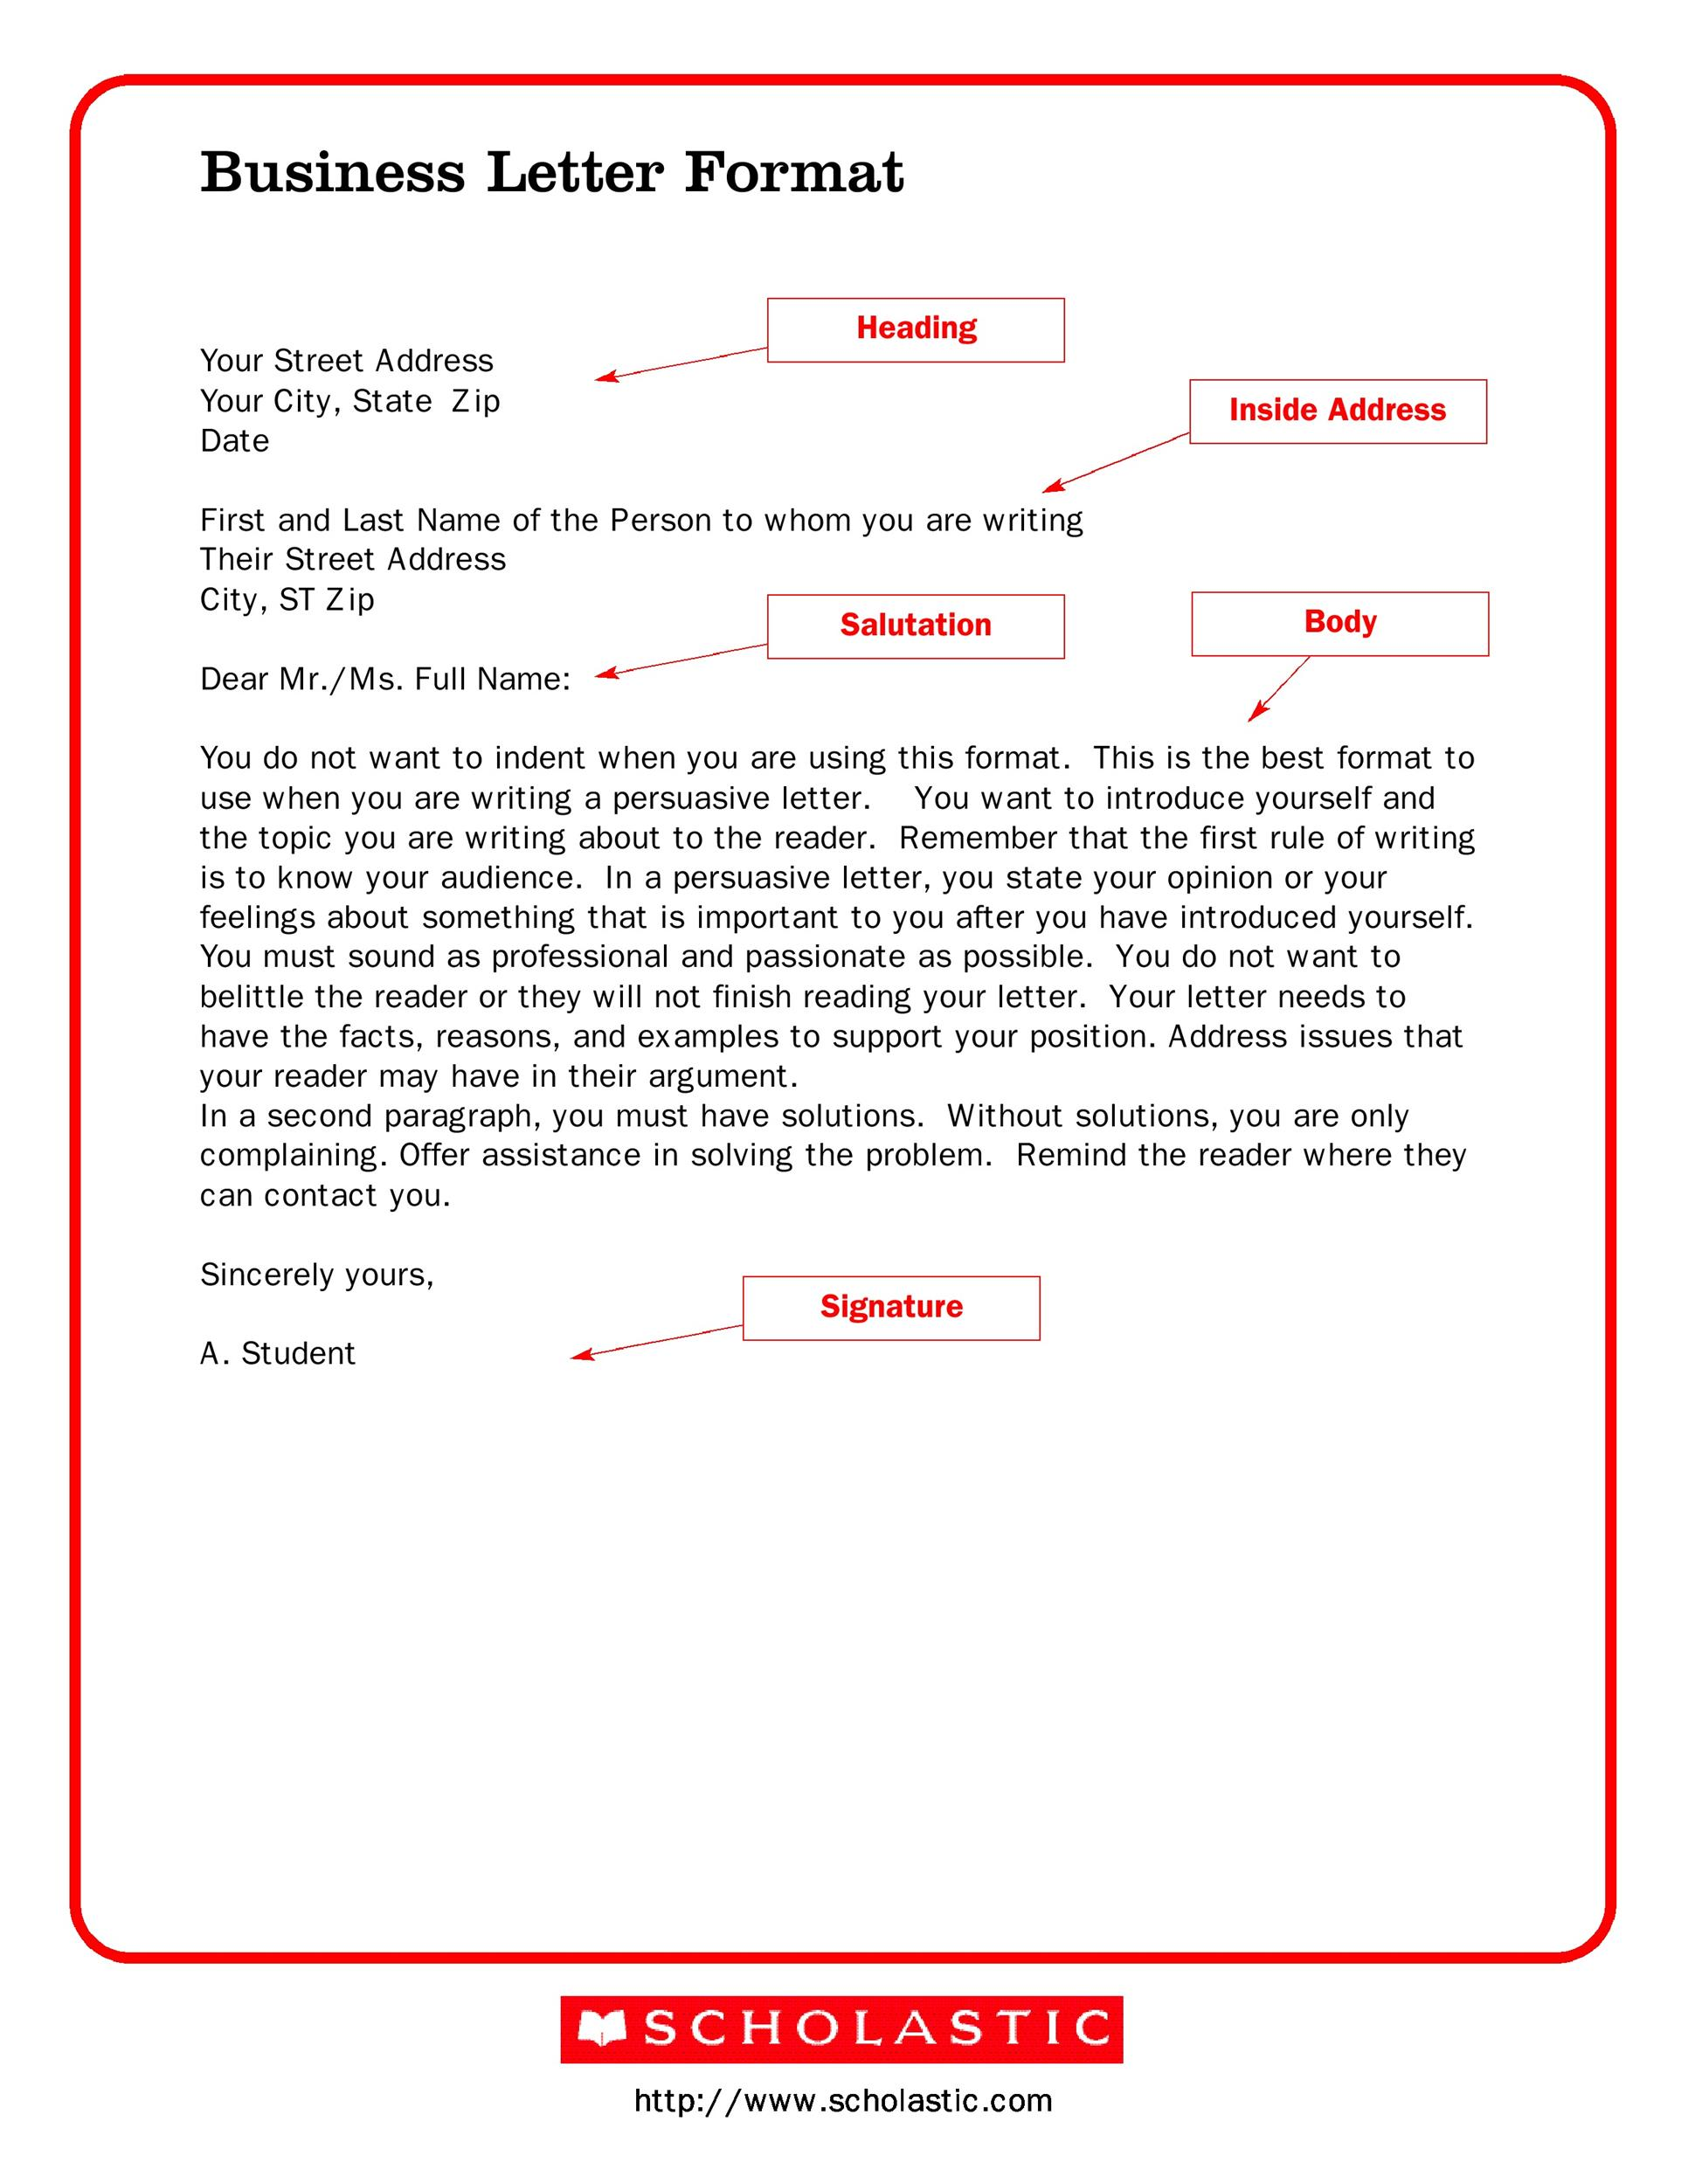 Business letter format sample letter wajeb Image collections